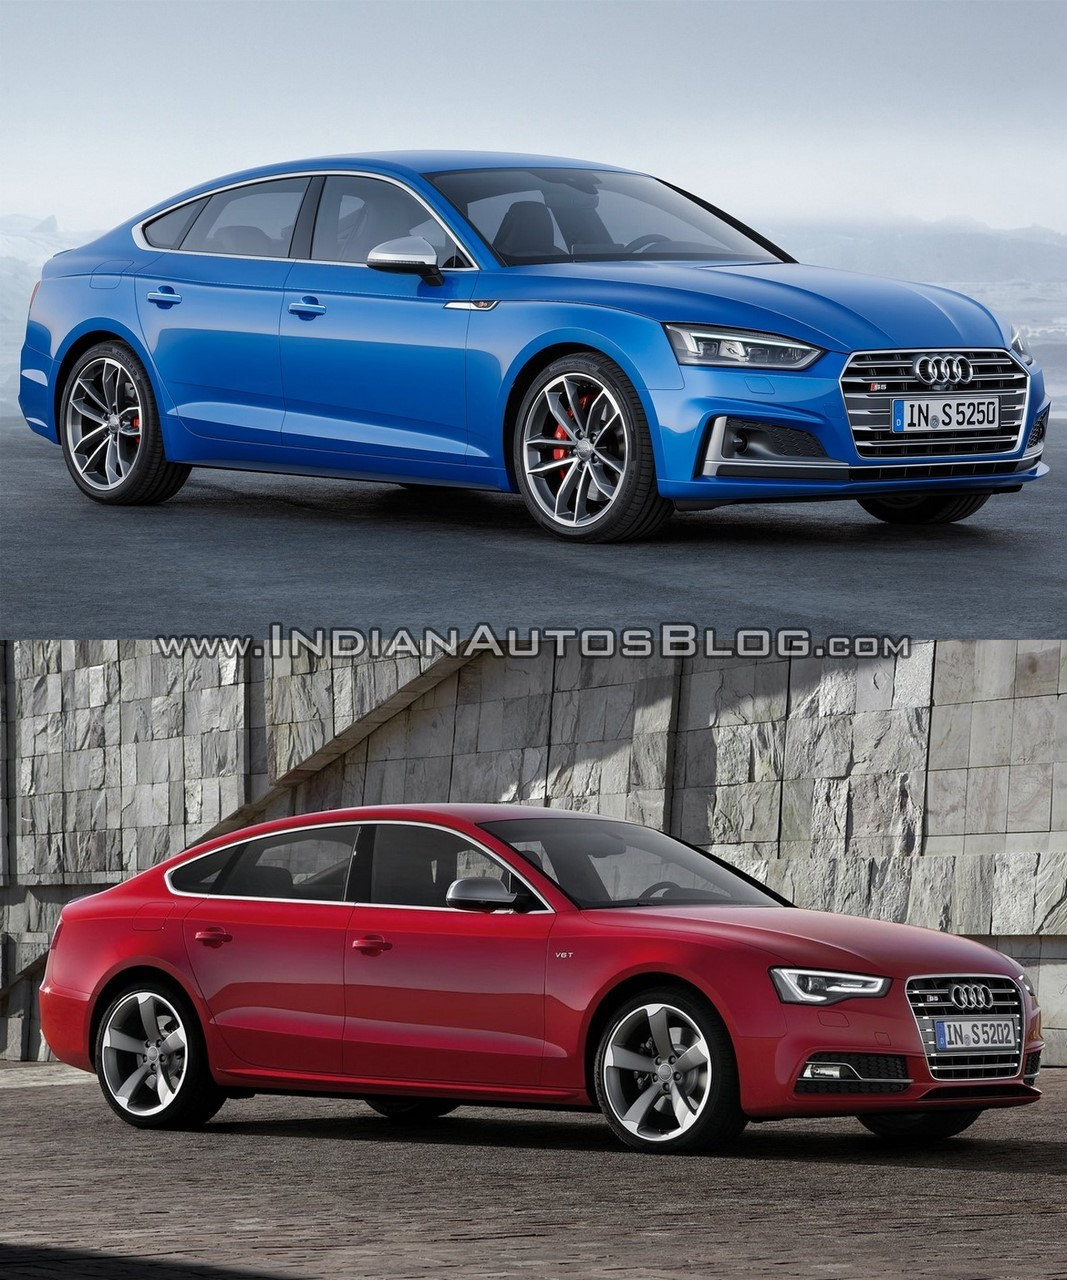 2017 audi a5 s5 sportback vs older model in images. Black Bedroom Furniture Sets. Home Design Ideas